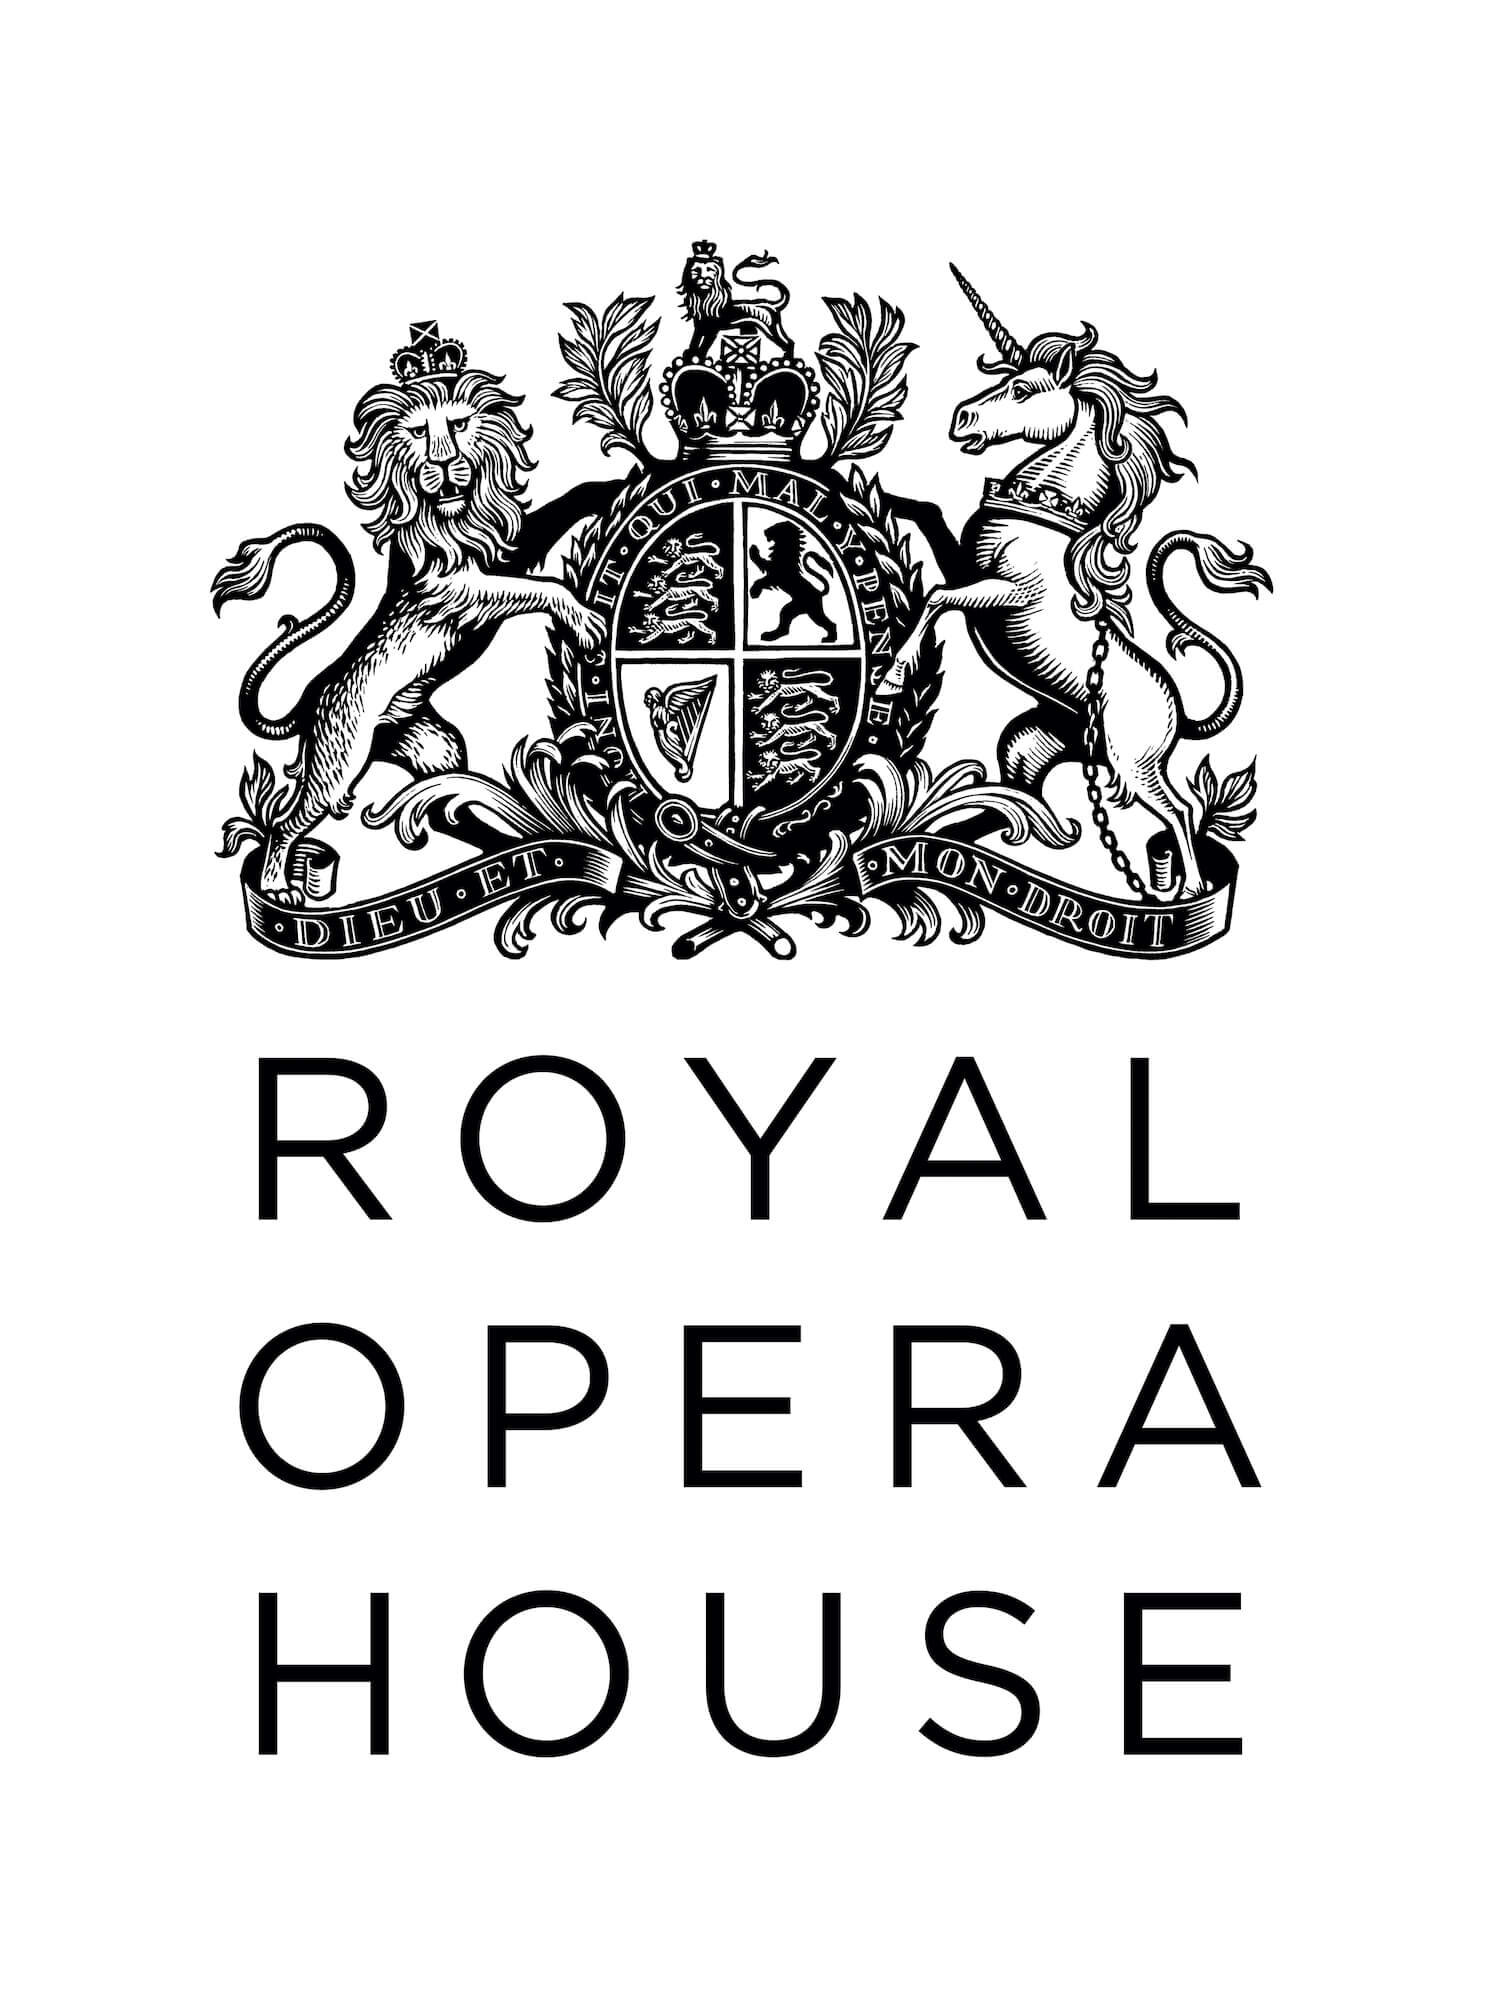 Our Departure Board - Worked With Royal Opera House